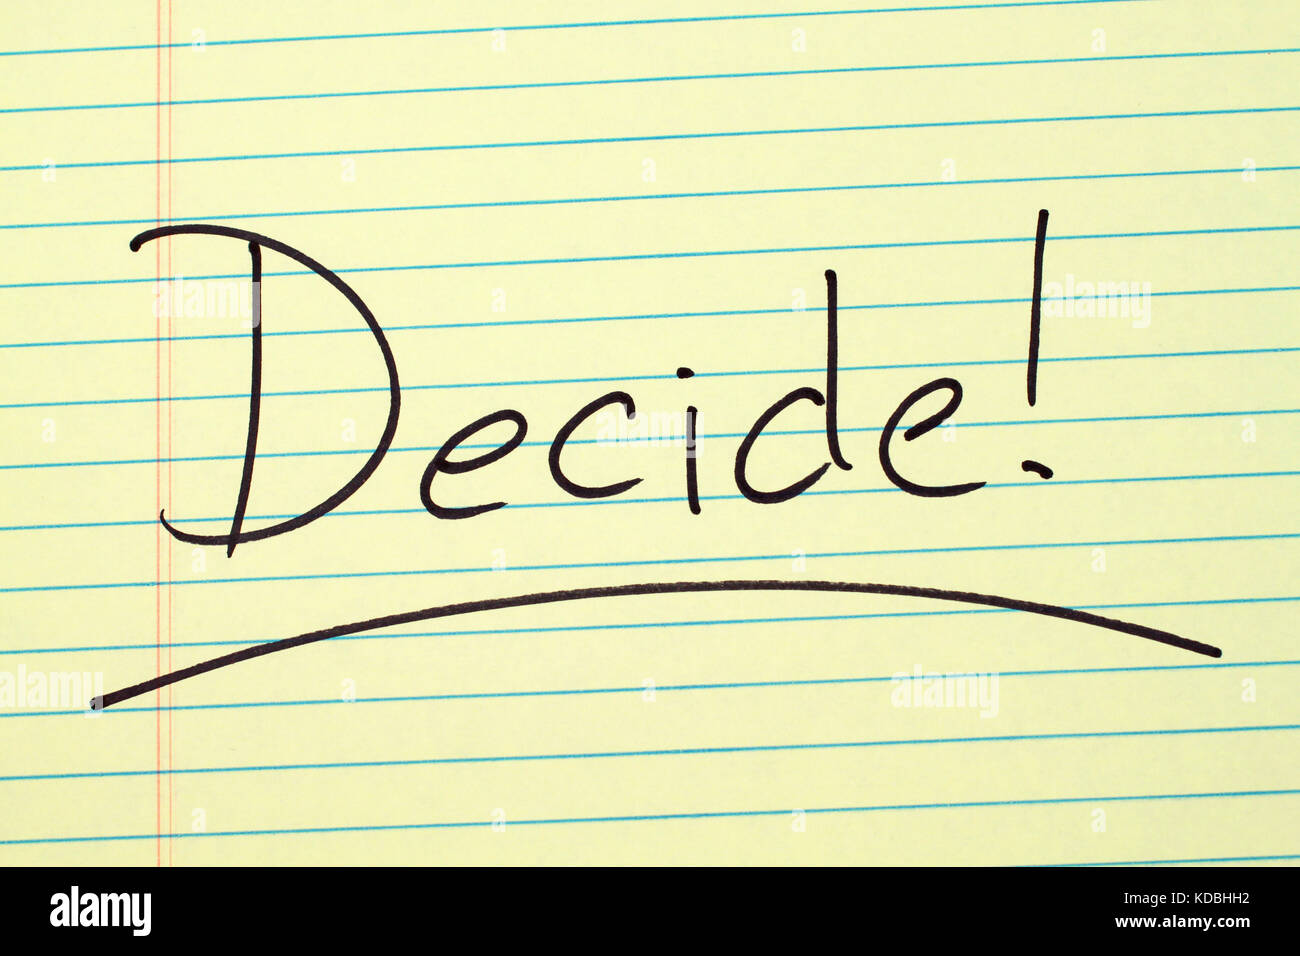 The word 'Decide!' underlined on a yellow legal pad - Stock Image